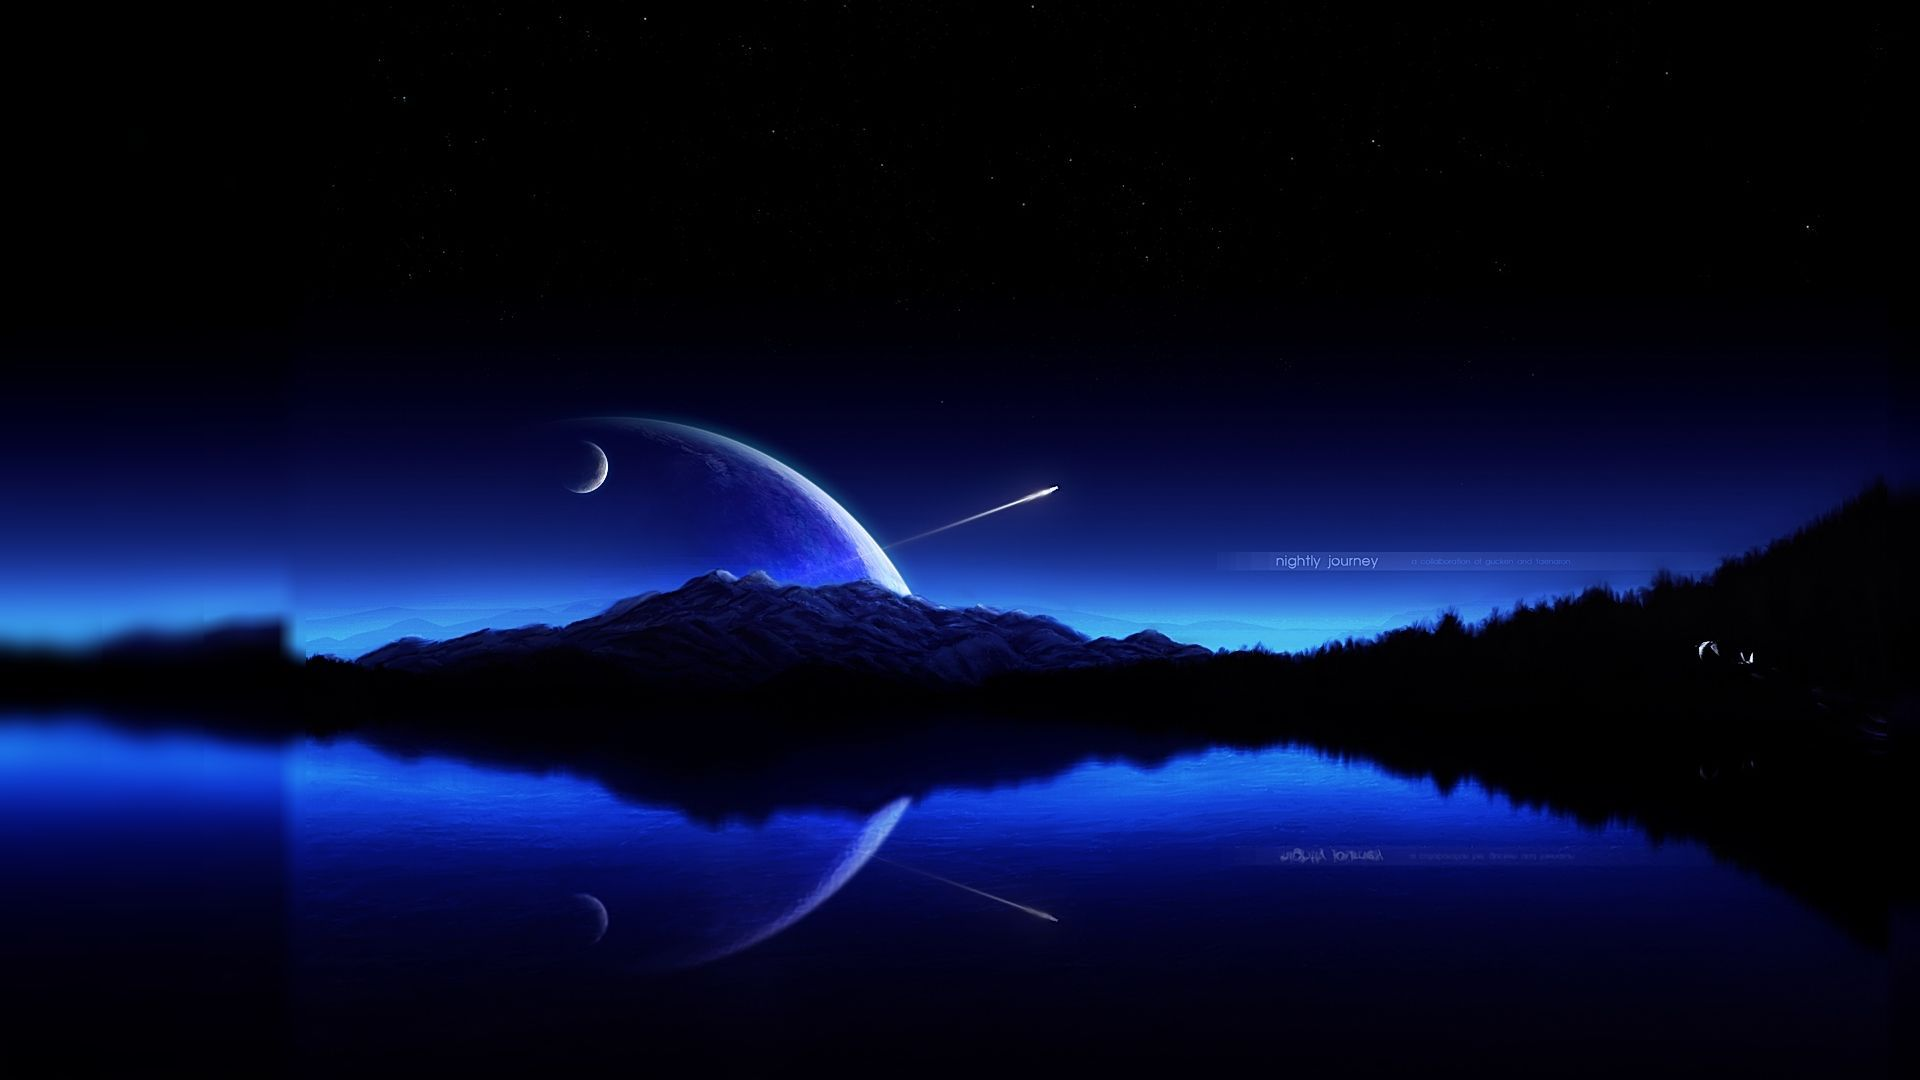 Hd Wallpapers 1920x1080 Free Cool Desktop Backgrounds Laptop Wallpaper Night Sky Wallpaper